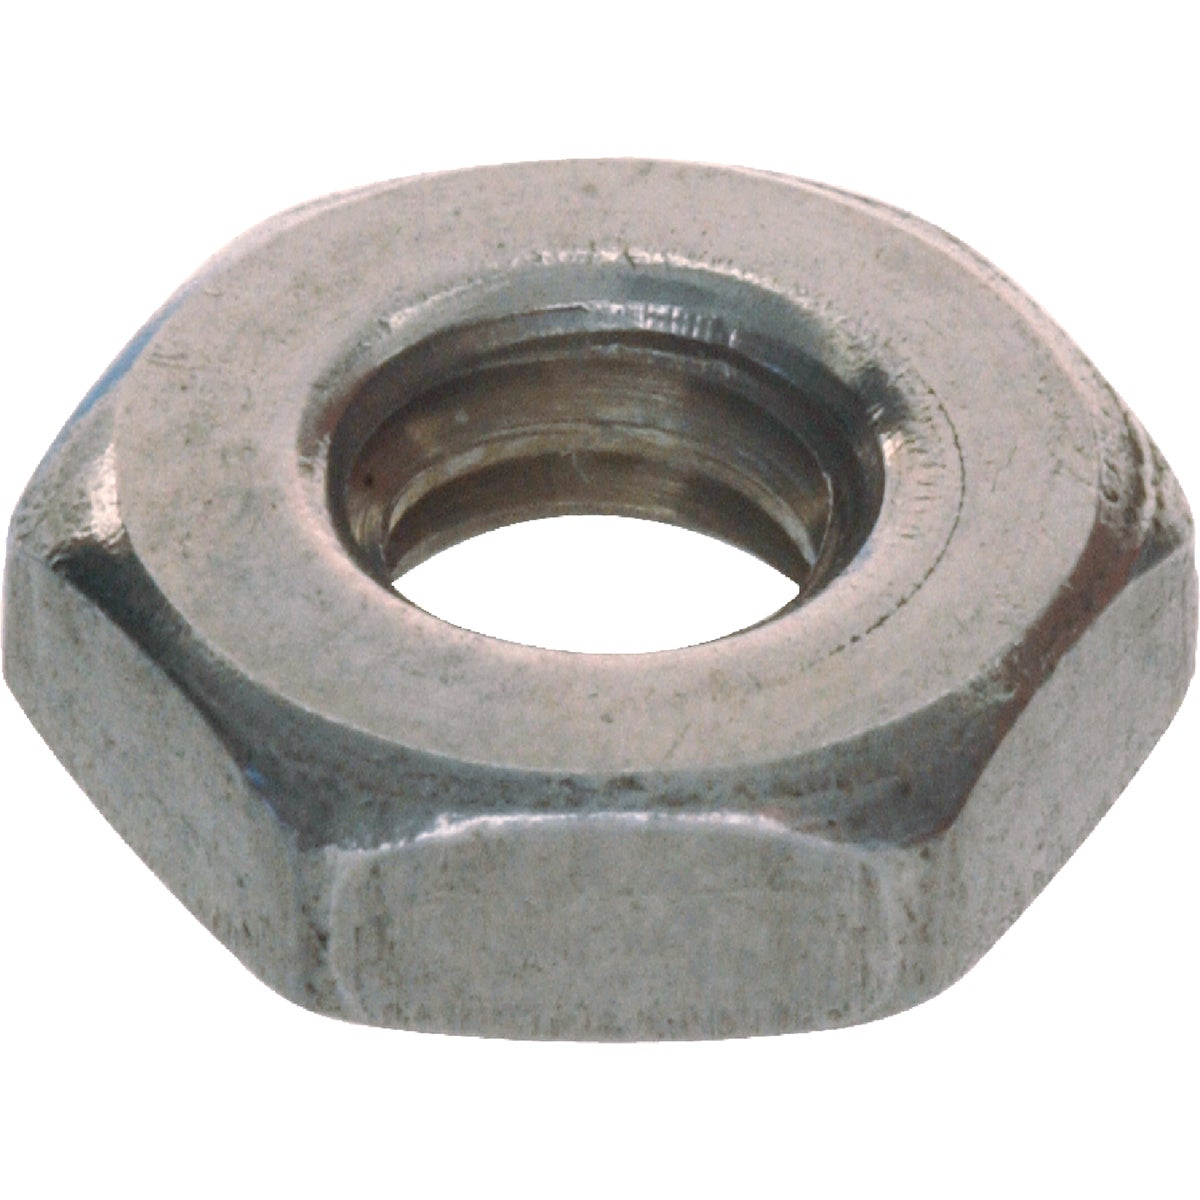 6-32 SS MACH SCREW NUT - 829224 by Hillman Fastener